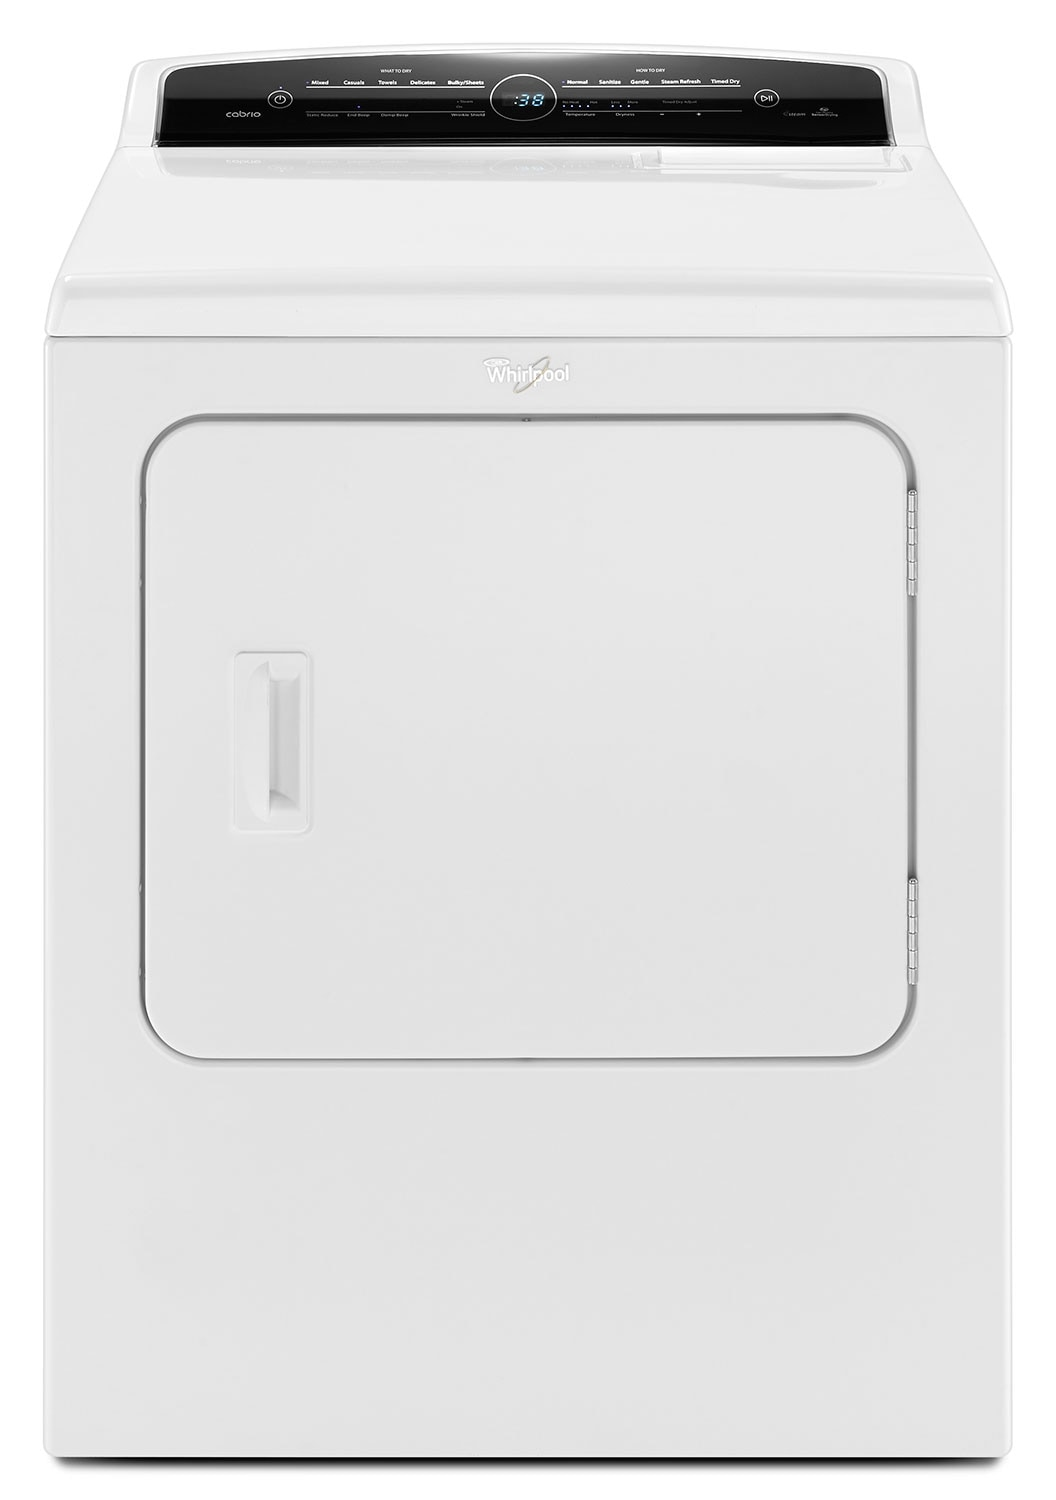 Washers and Dryers - Whirlpool® Cabrio® 7.0 Cu. Ft. Gas Dryer - White